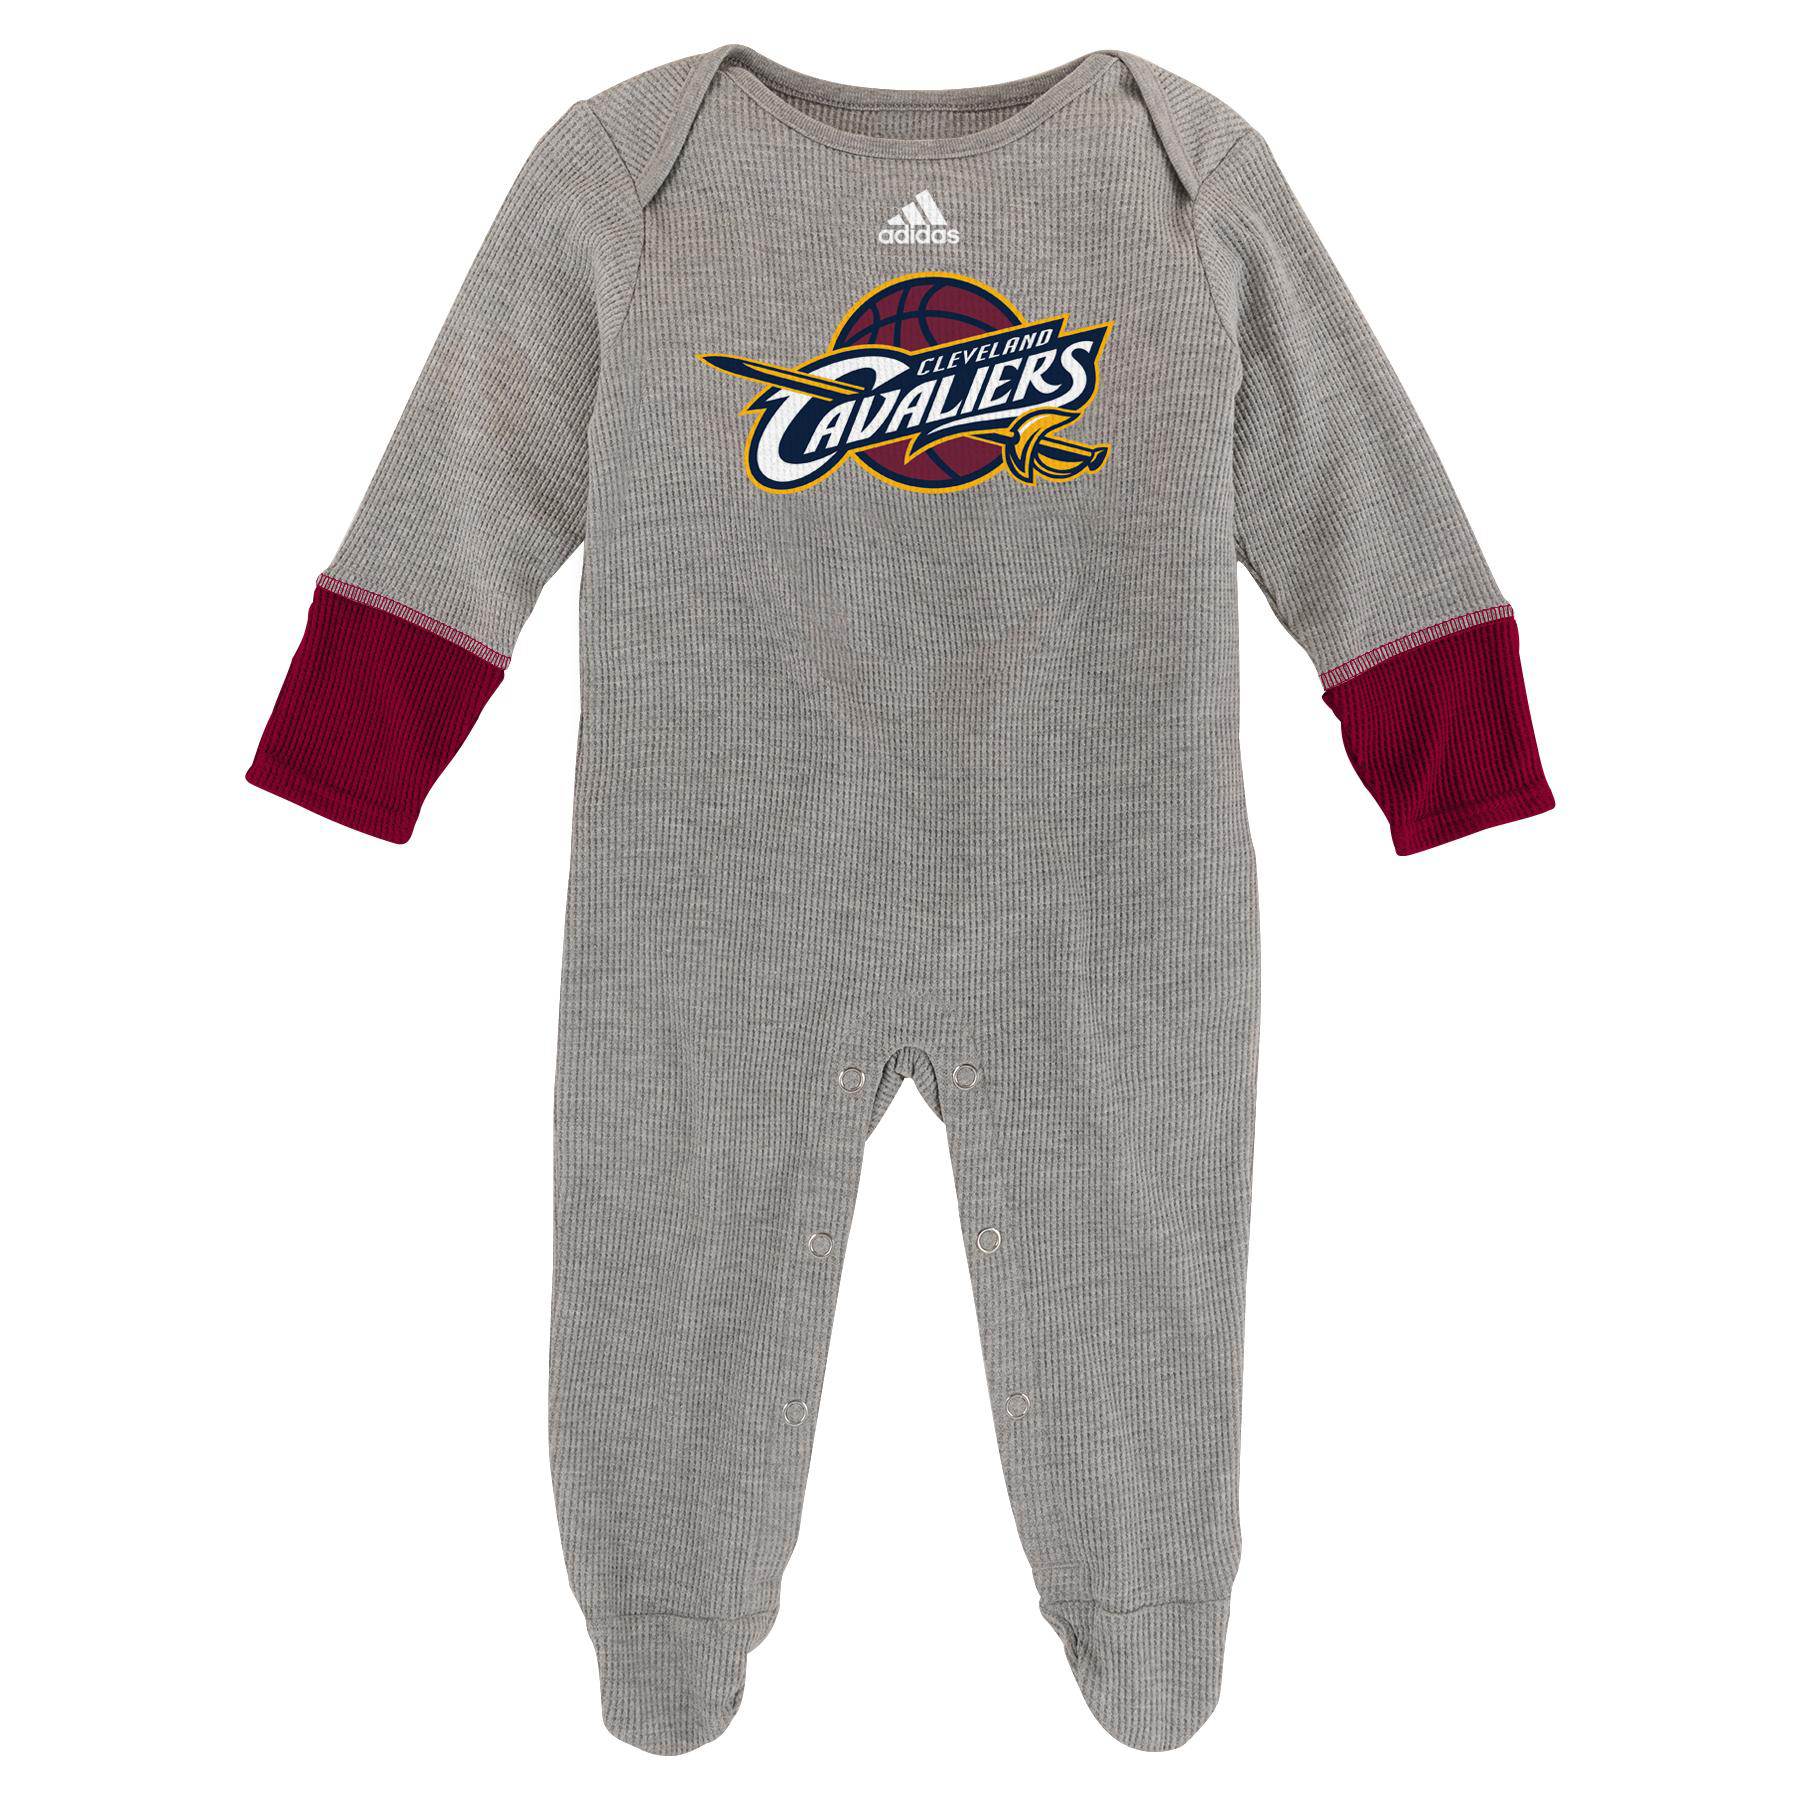 Cleveland Cavaliers Mitted Bodysuit - New Born